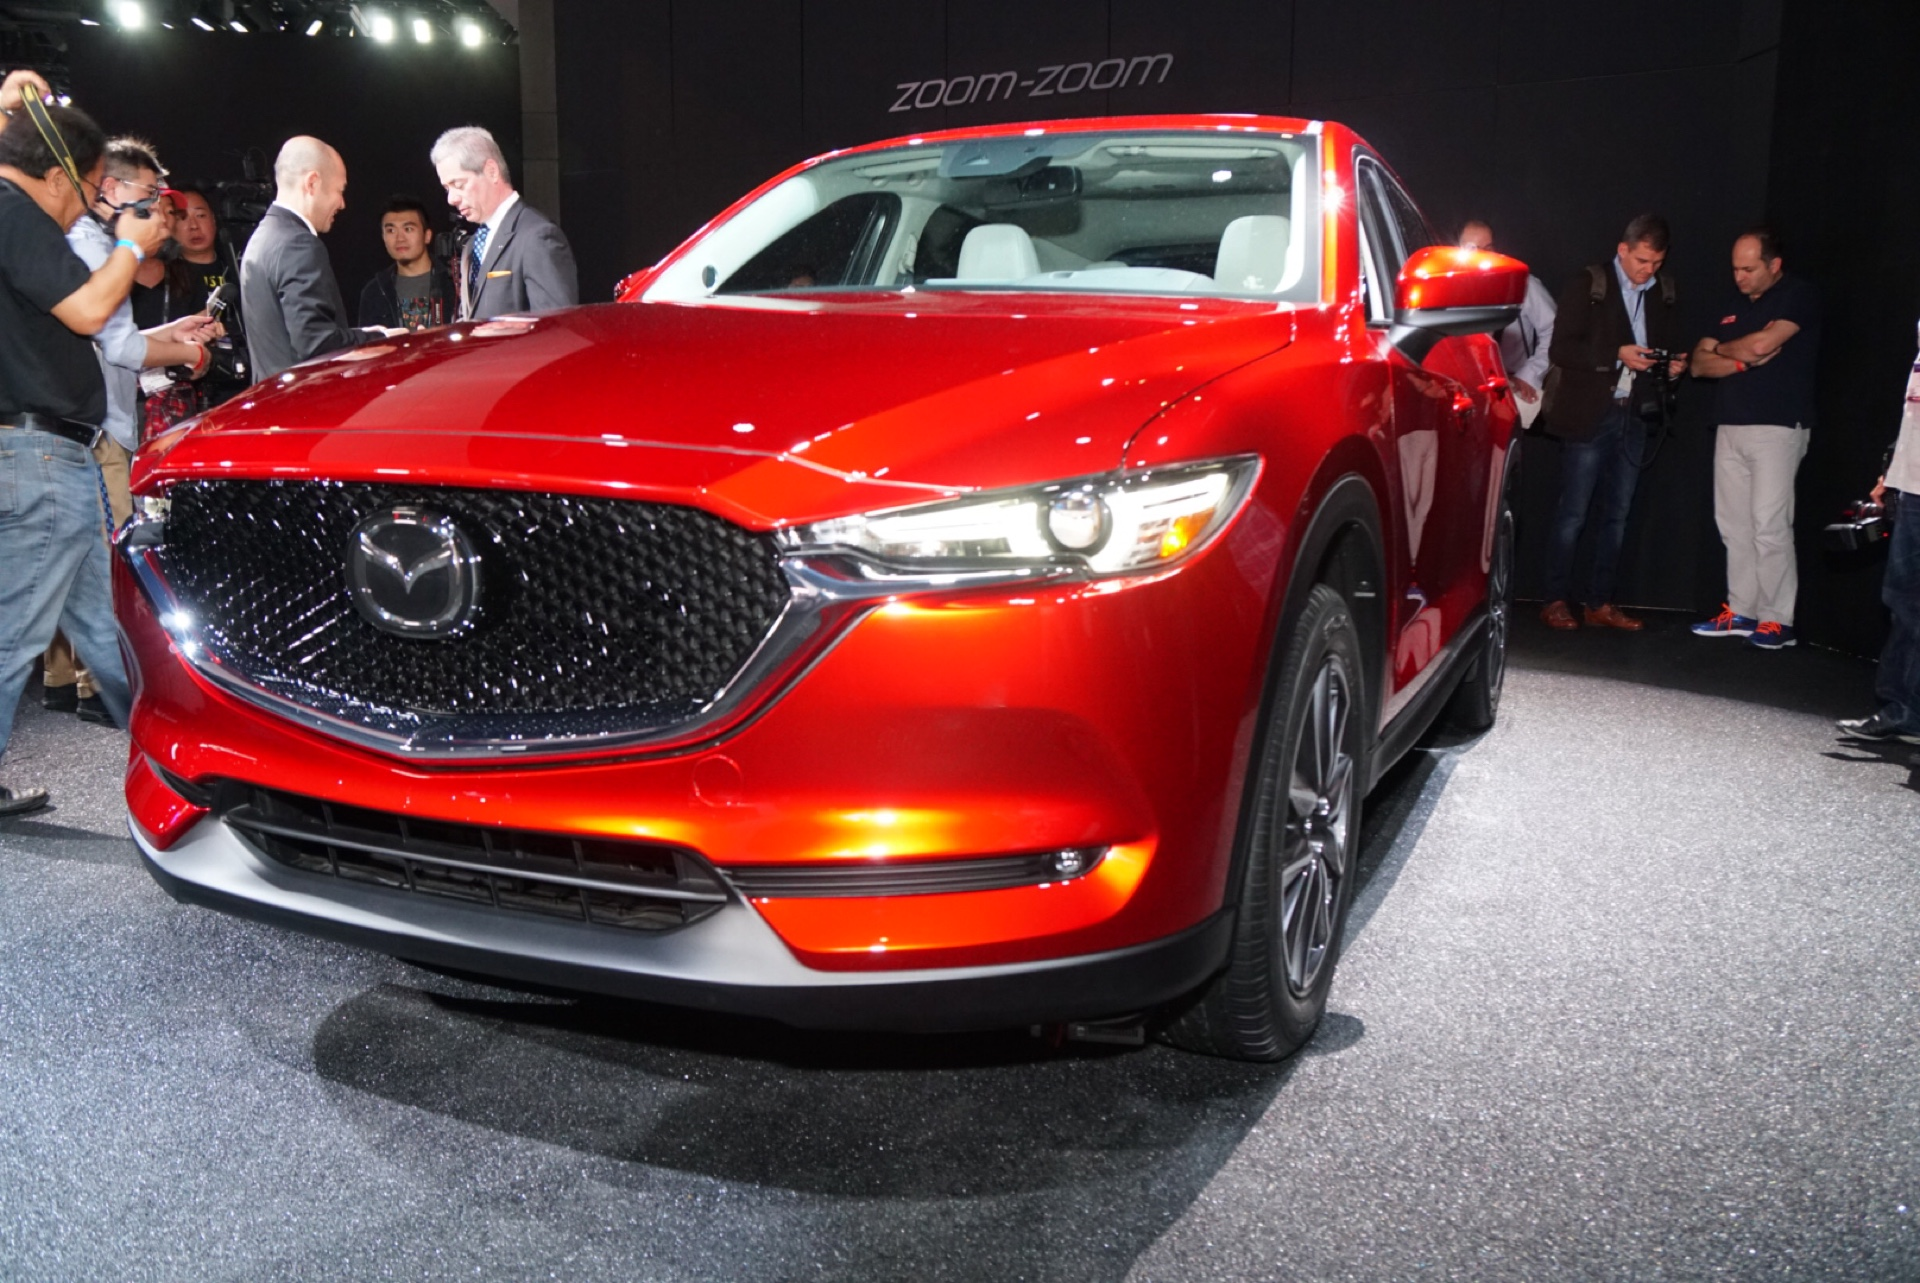 Mazda diesel to arrive fall 2017, it says, in new CX-5